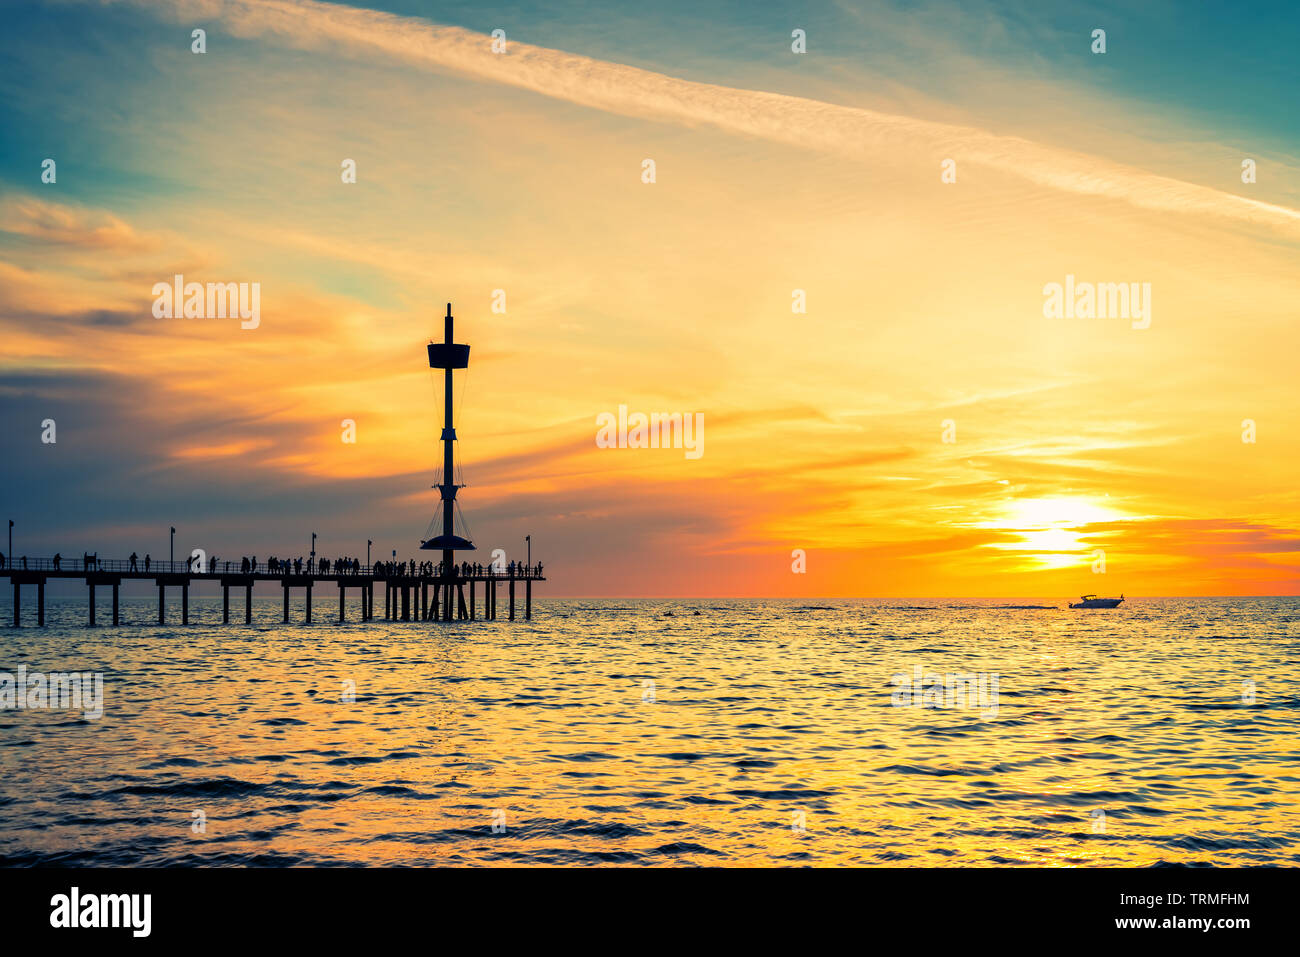 People silhouettes on Brighton Jetty and modern boat at sunset, South Australia - Stock Image